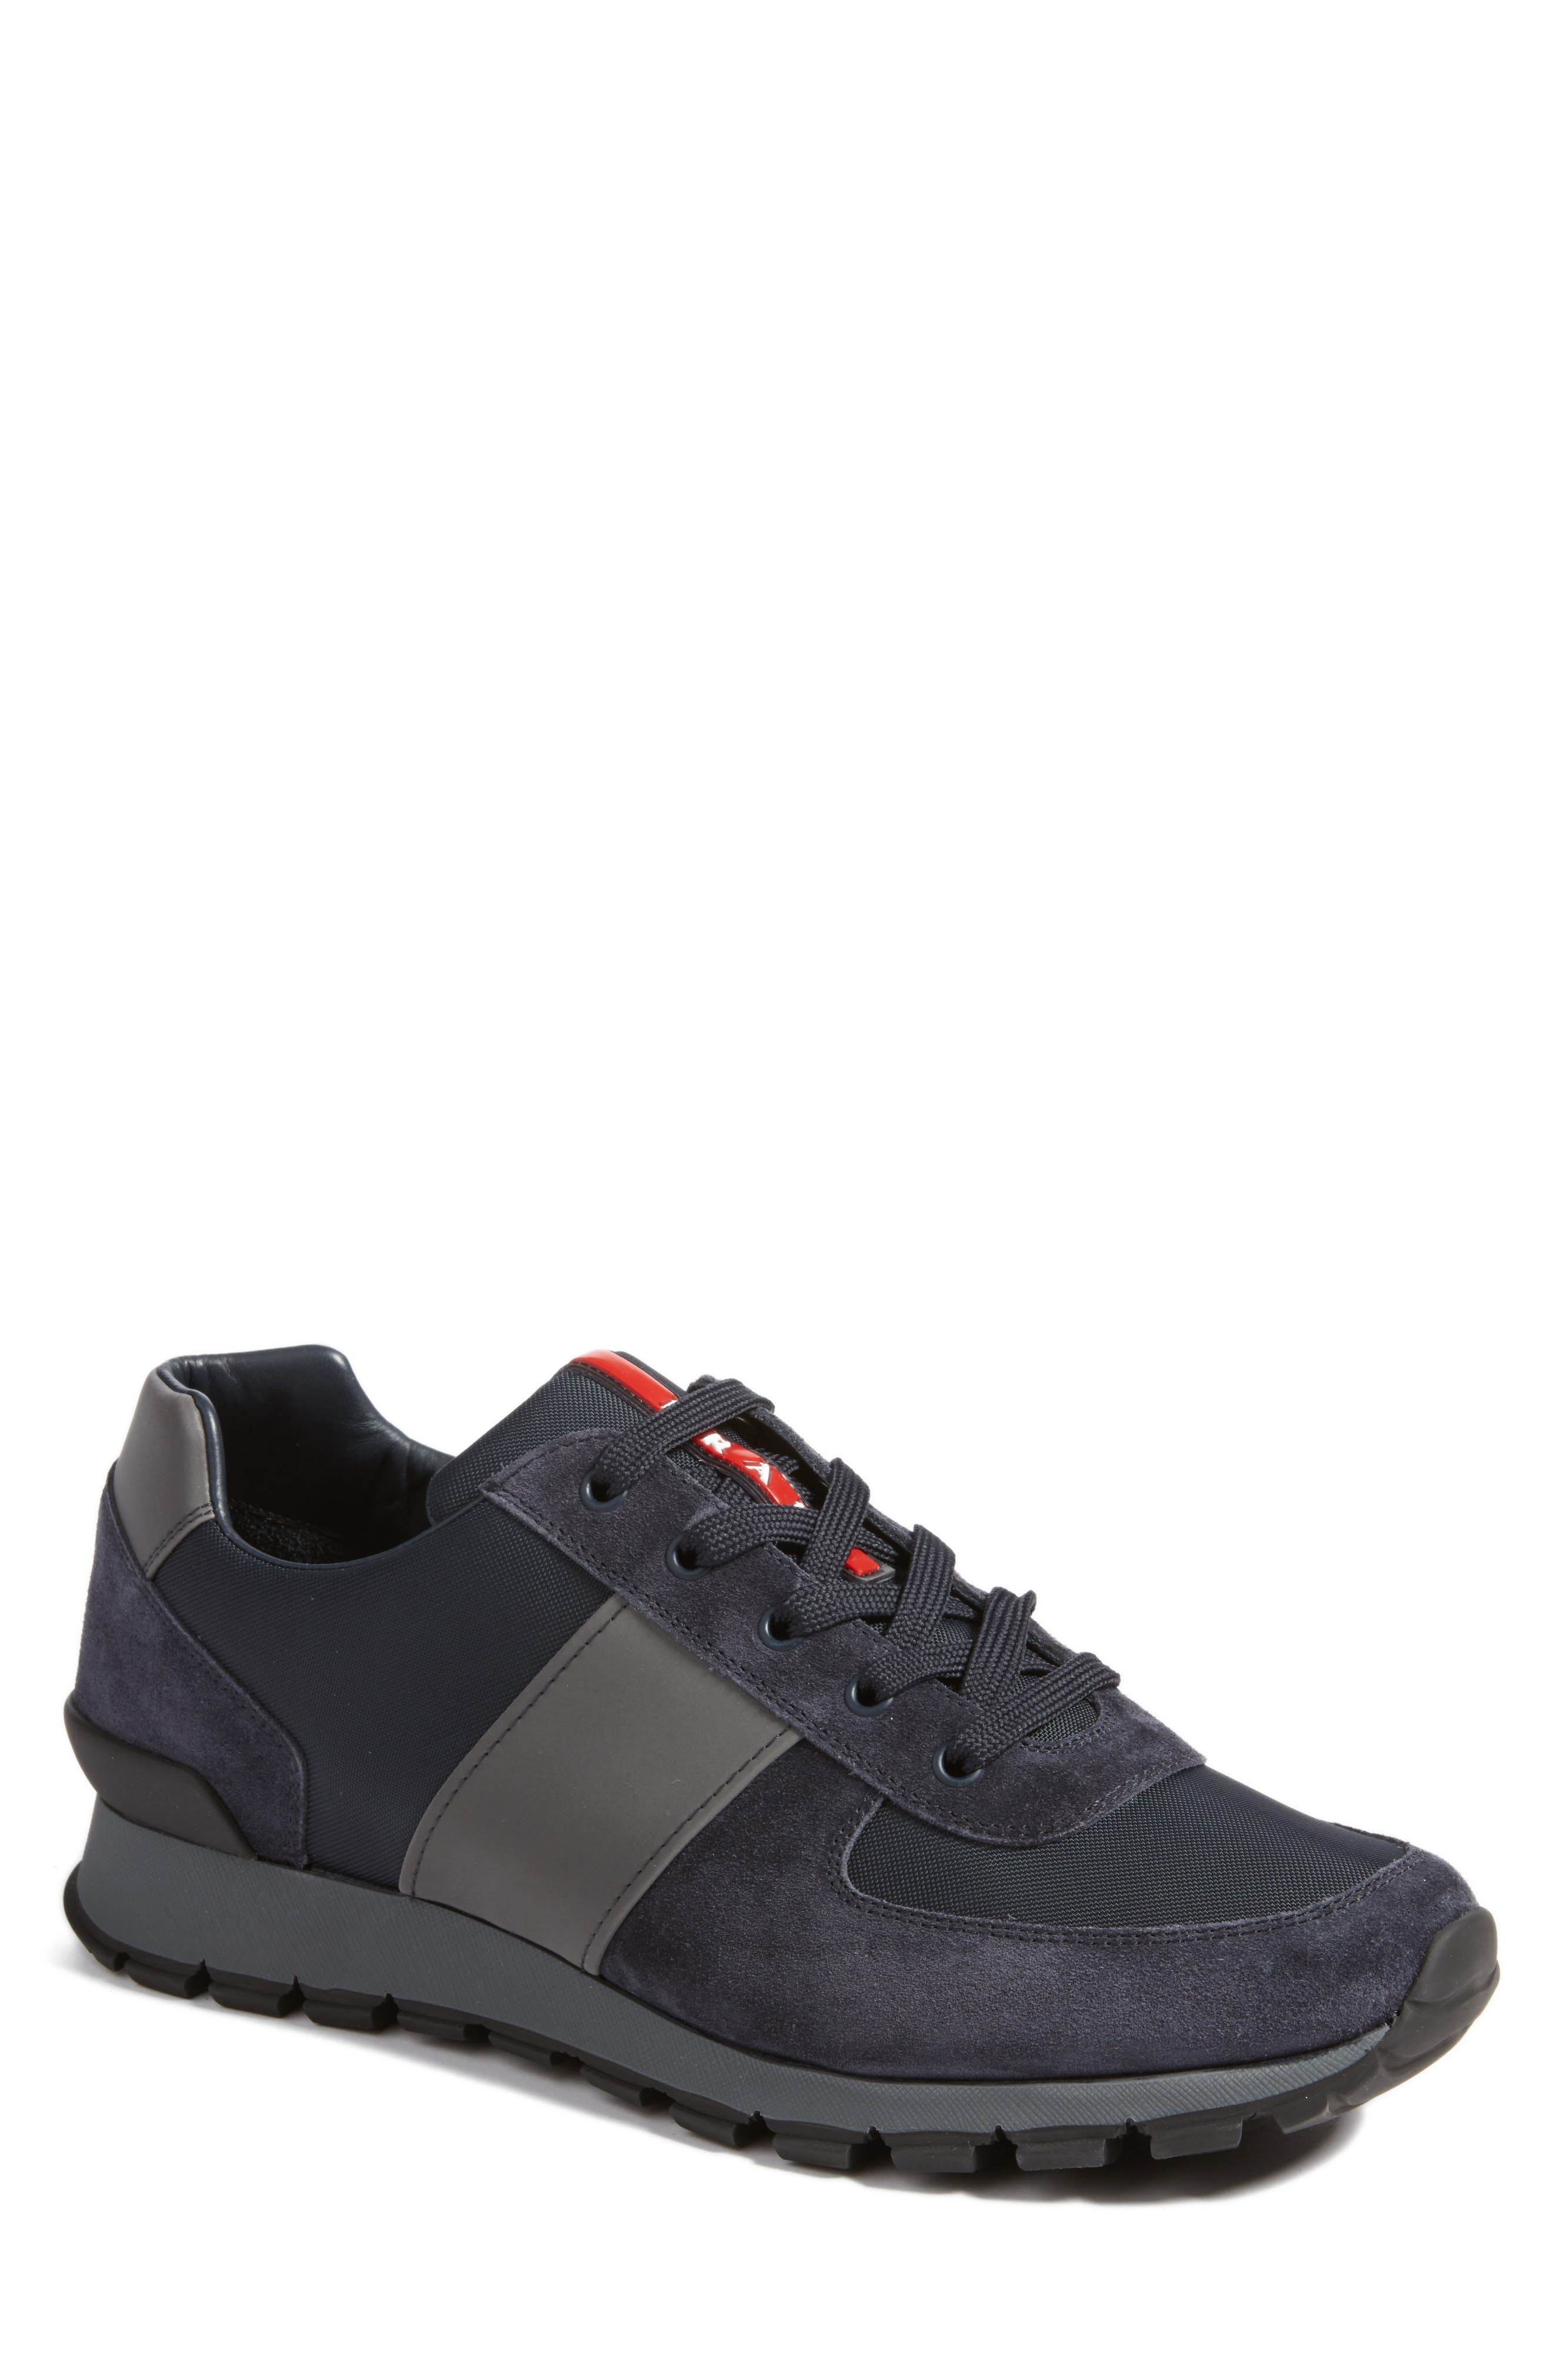 Prada Sneaker,                         Main,                         color, Bleu Suede